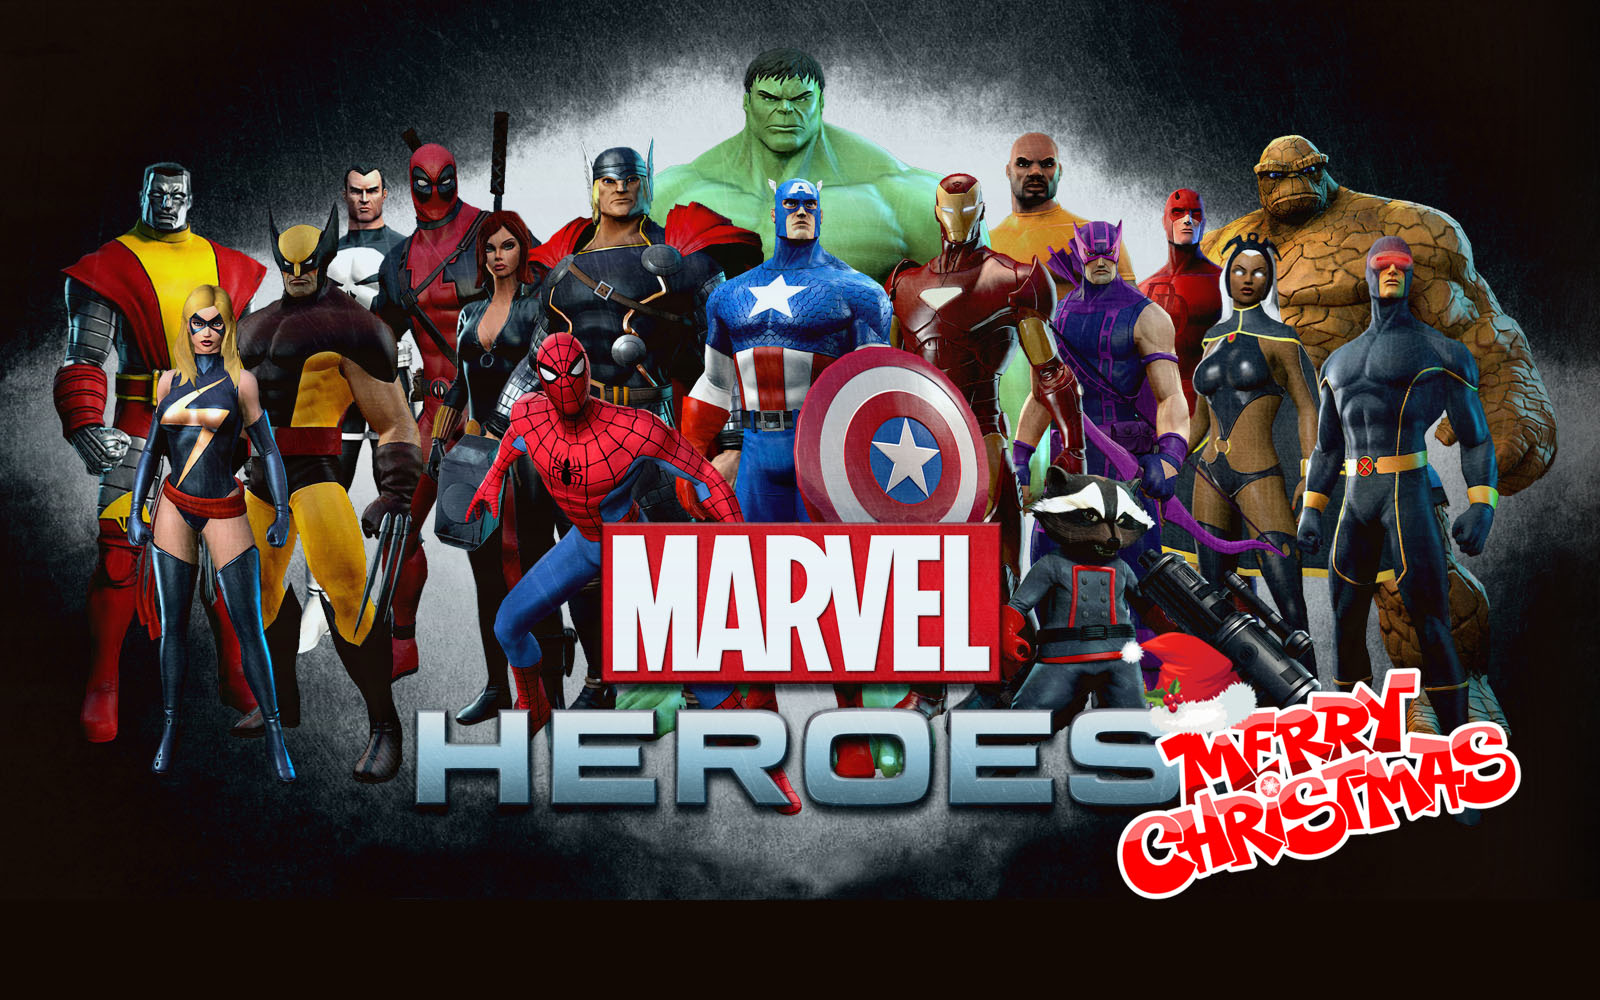 happy merry christmas greetings marvel avengers team super heroes hd wallpaper